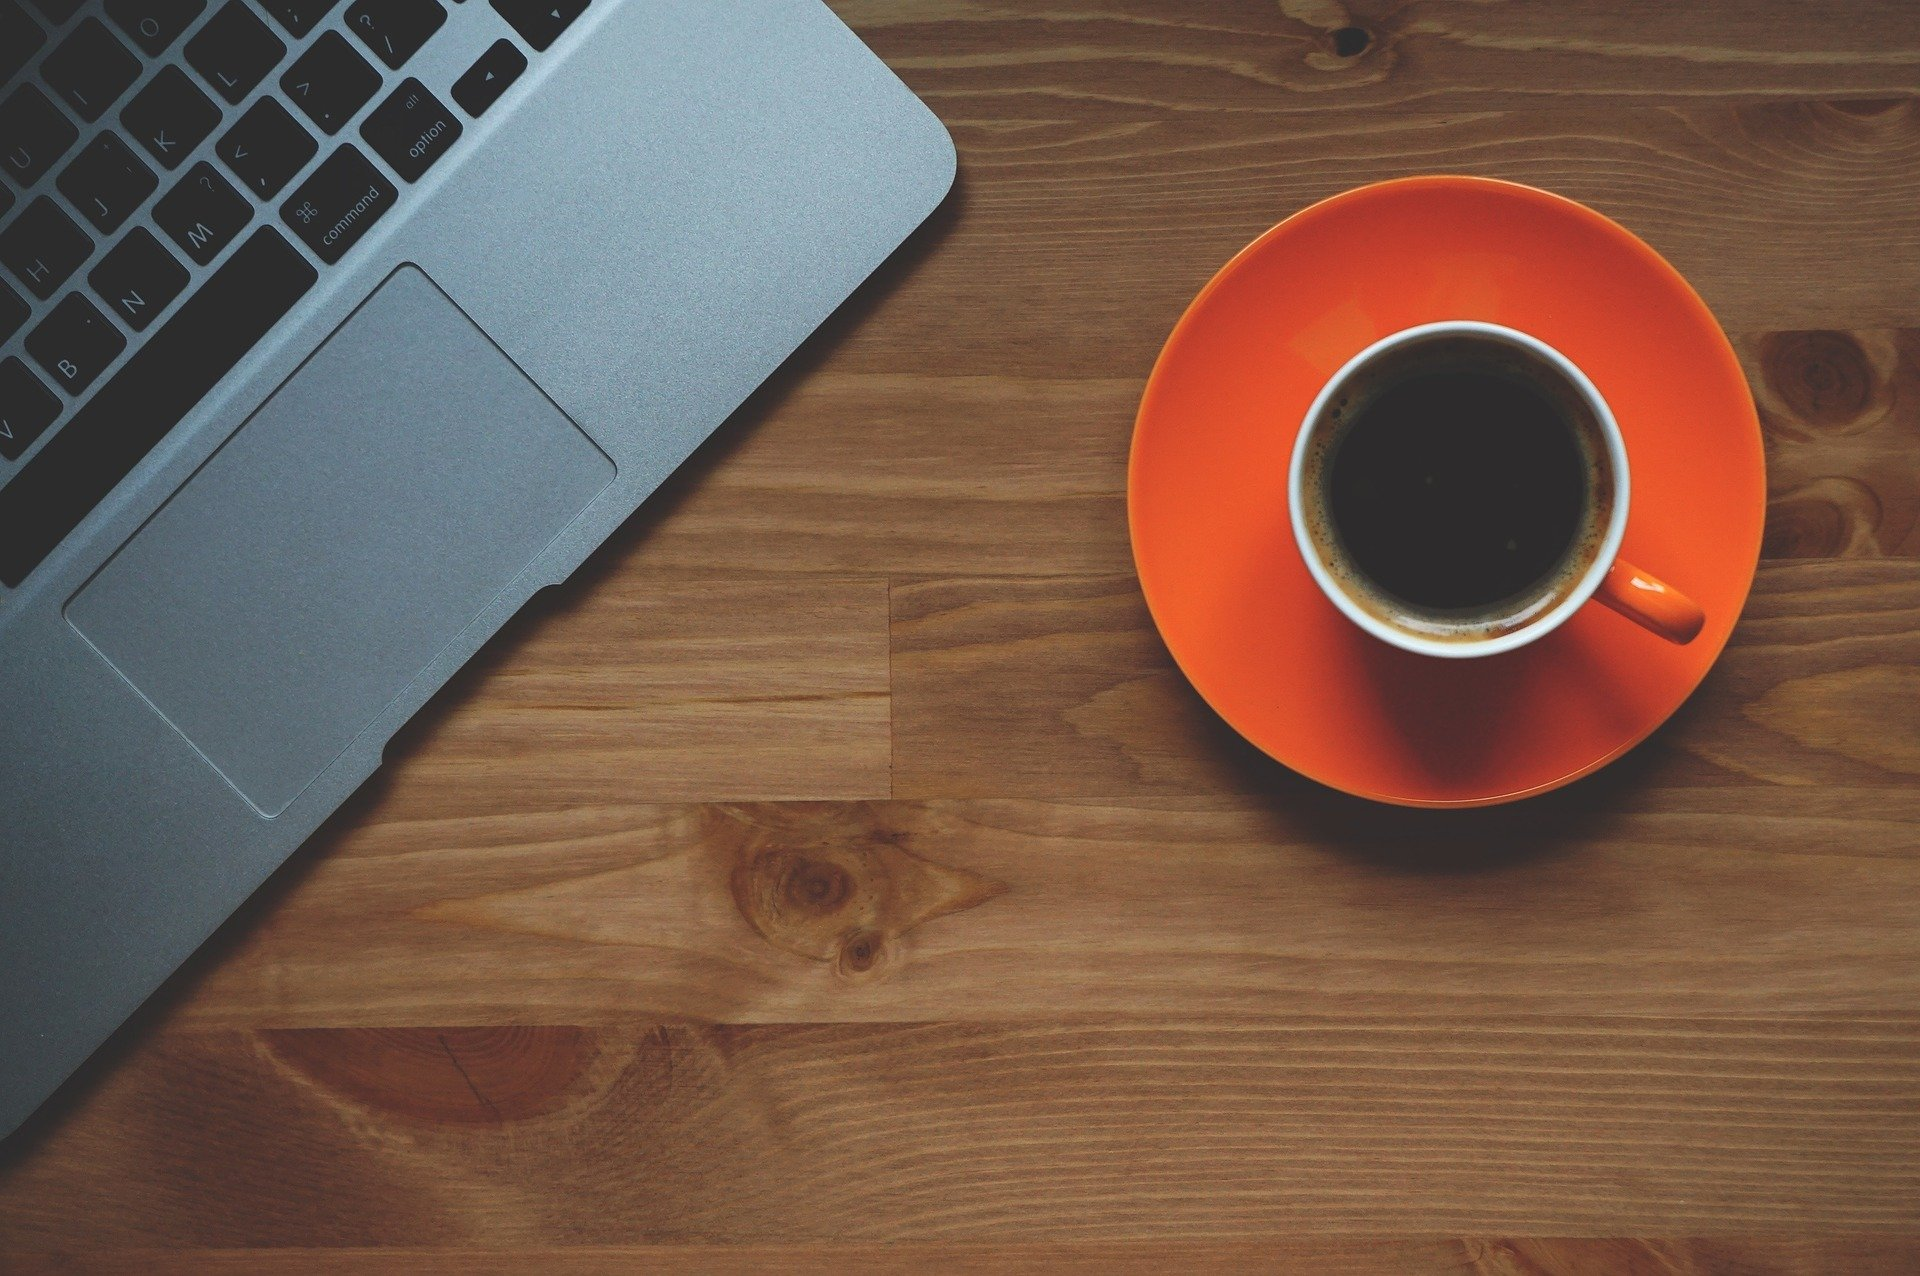 cup of black coffee sitting on orange coaster next to apple macbook on a wooden table